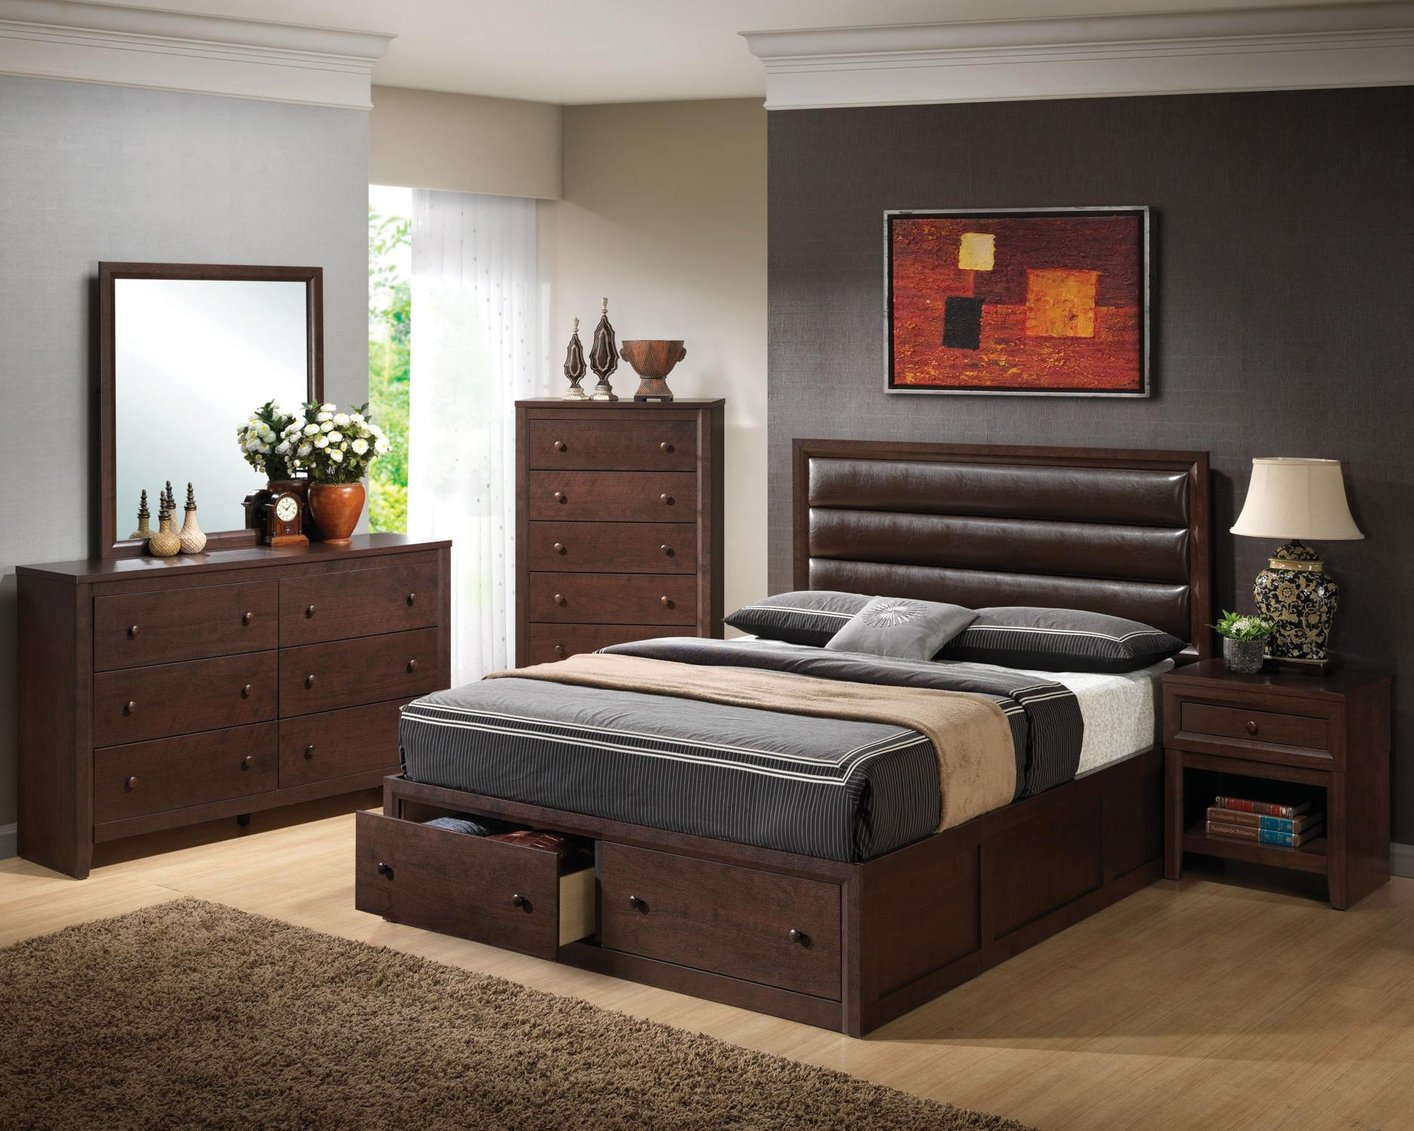 brown wood california king size headboard